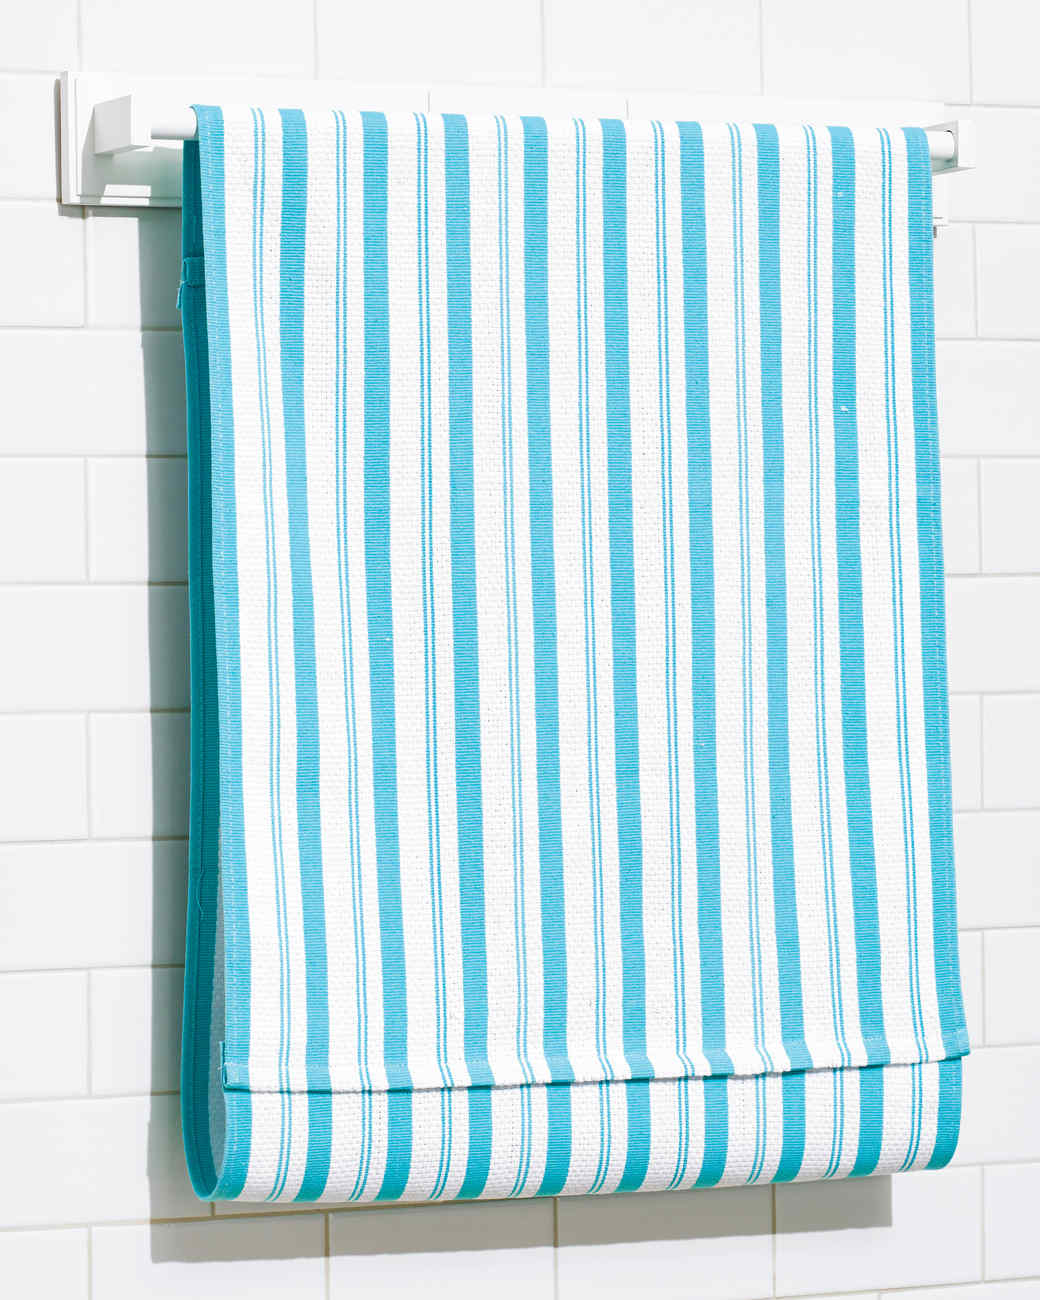 A Clever Towel-Hanging Solution